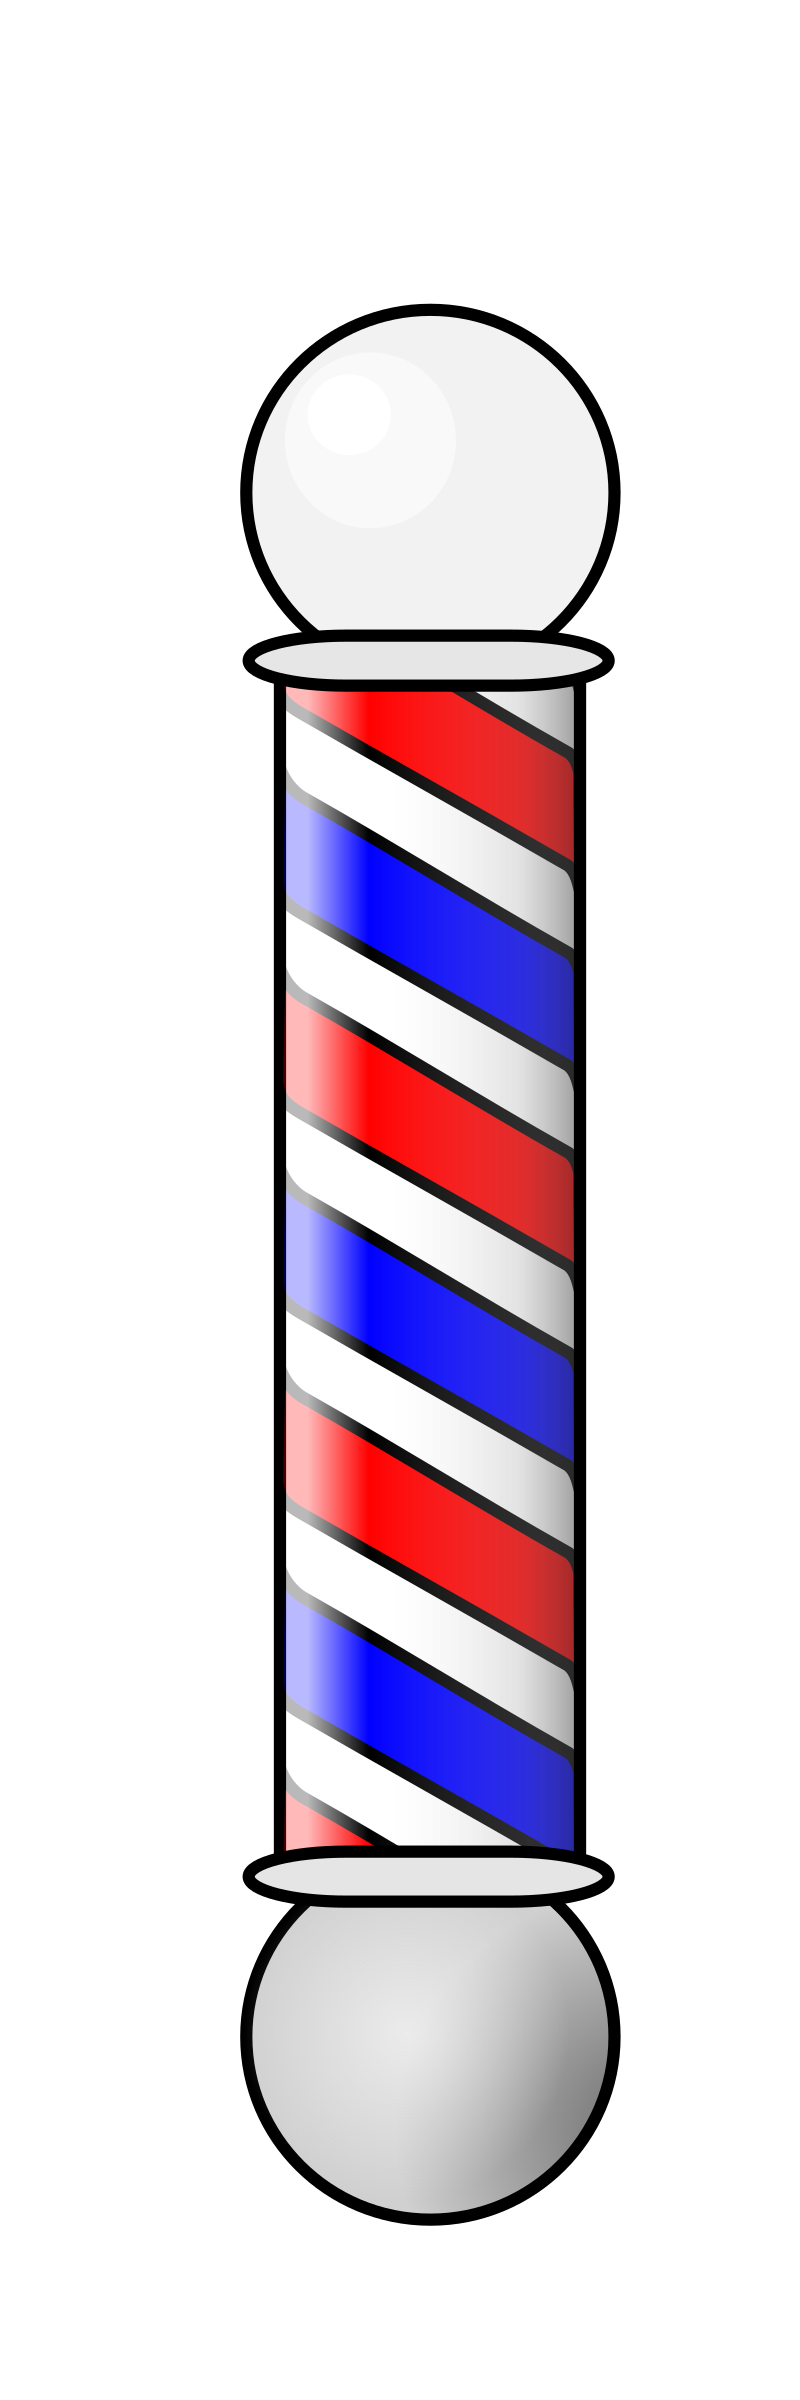 Images of barber clippers. Hairdresser clipart baber